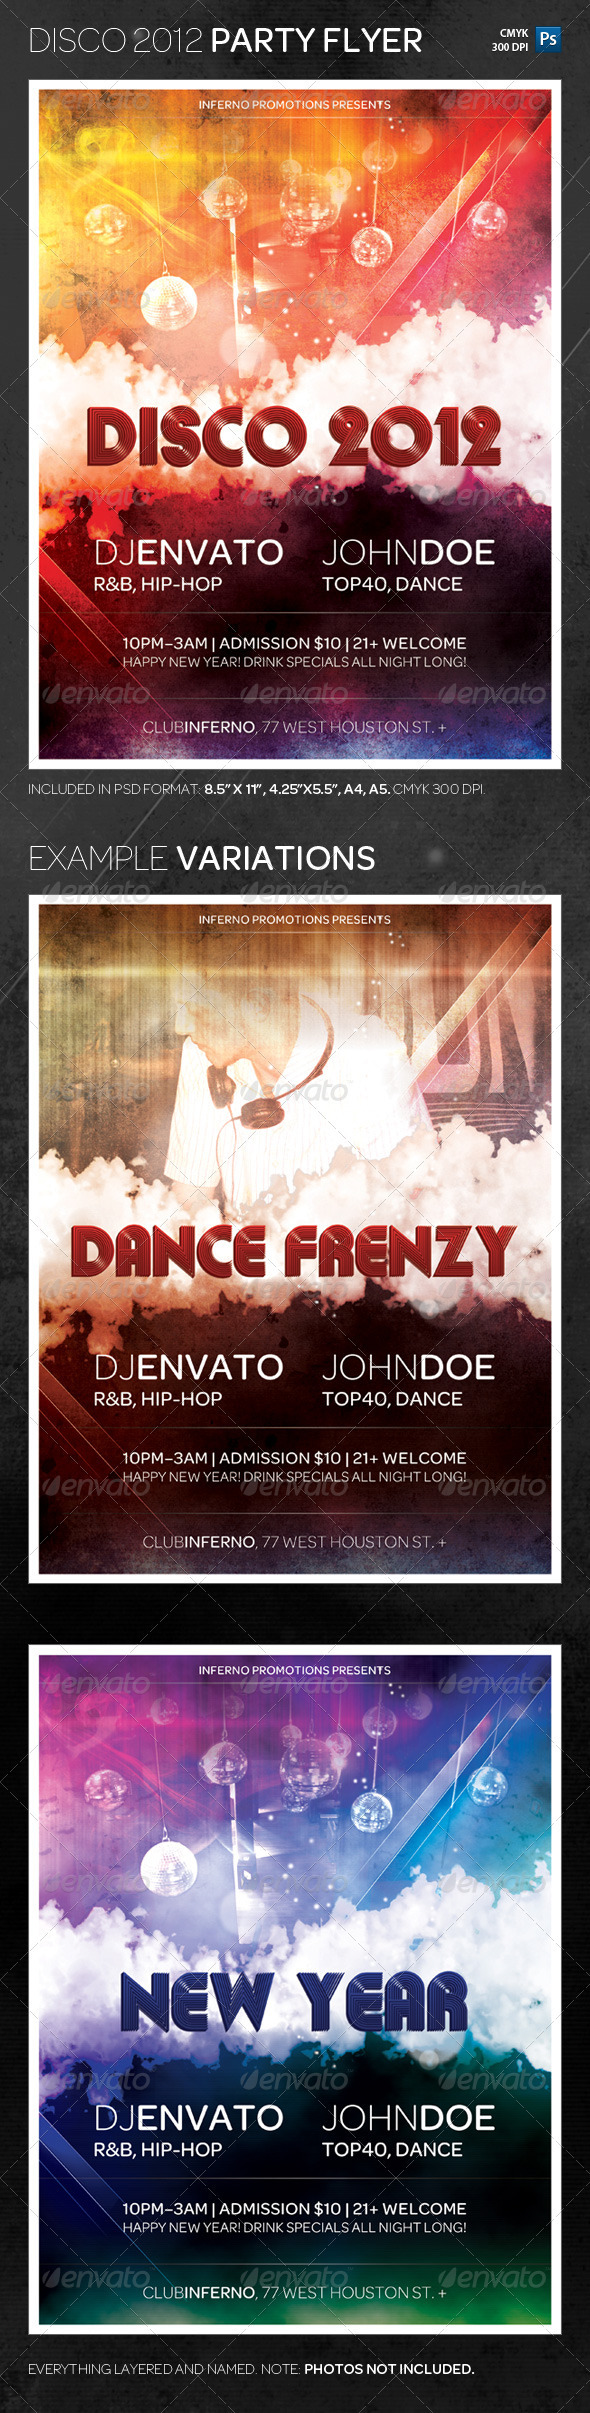 Disco 2012 Dance Party Flyer Template - Clubs & Parties Events